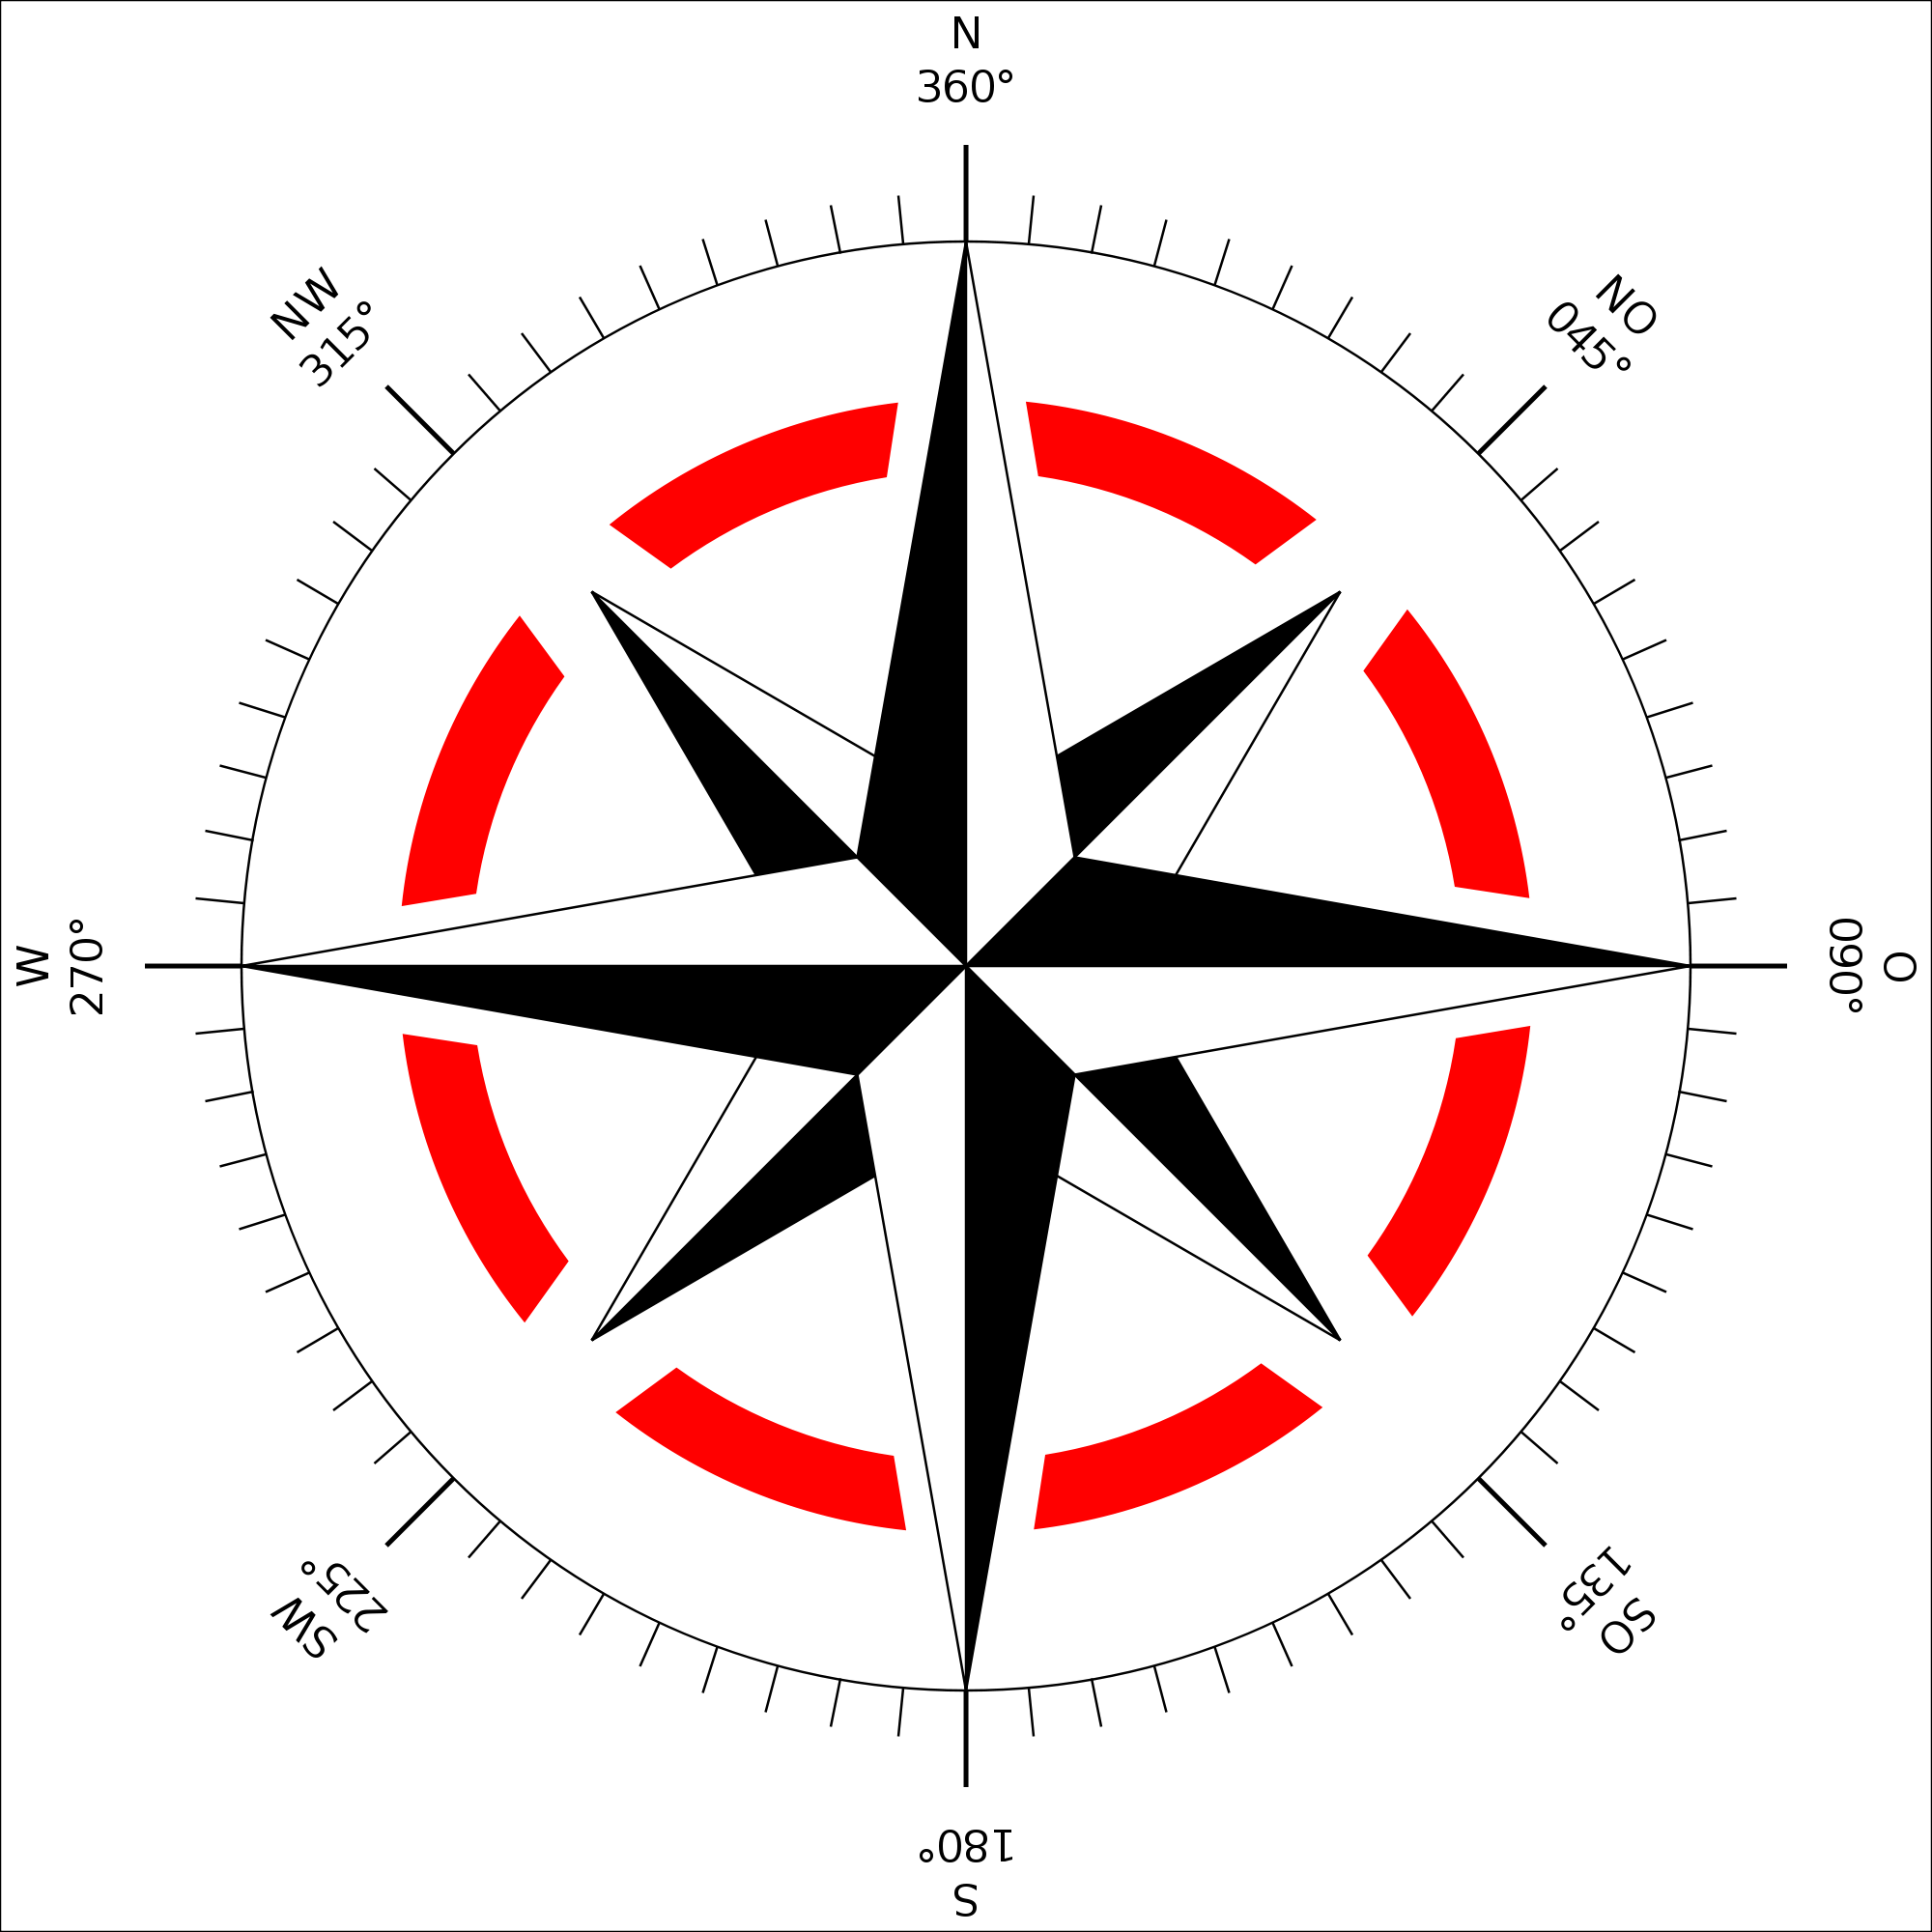 Blank Compass Rose Worksheet